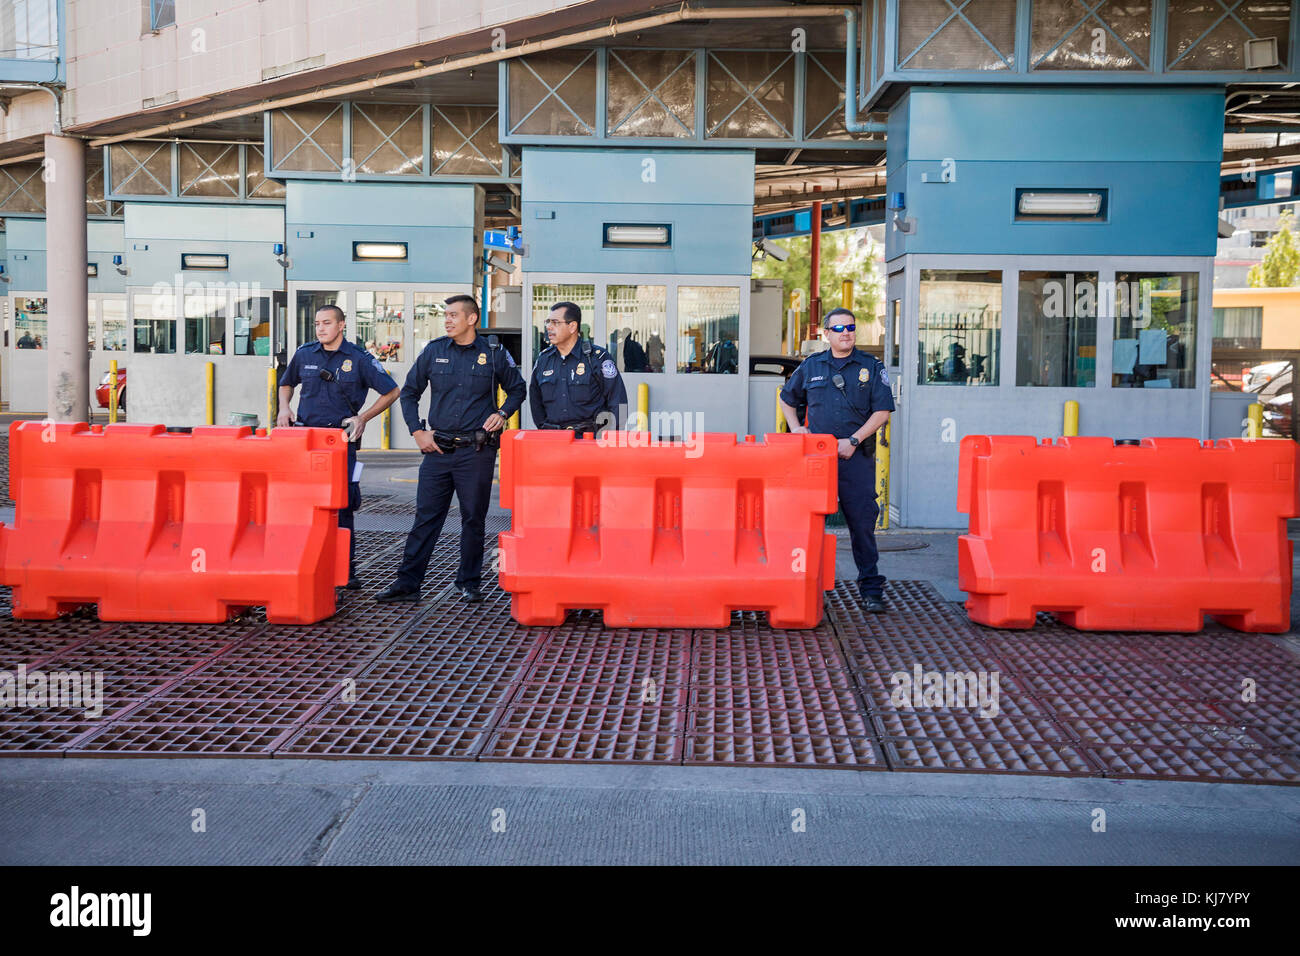 Nogales, Arizona - U.S. Customs and Border Protection Agents at the Nogales-Grand Avenue border crossing between - Stock Image